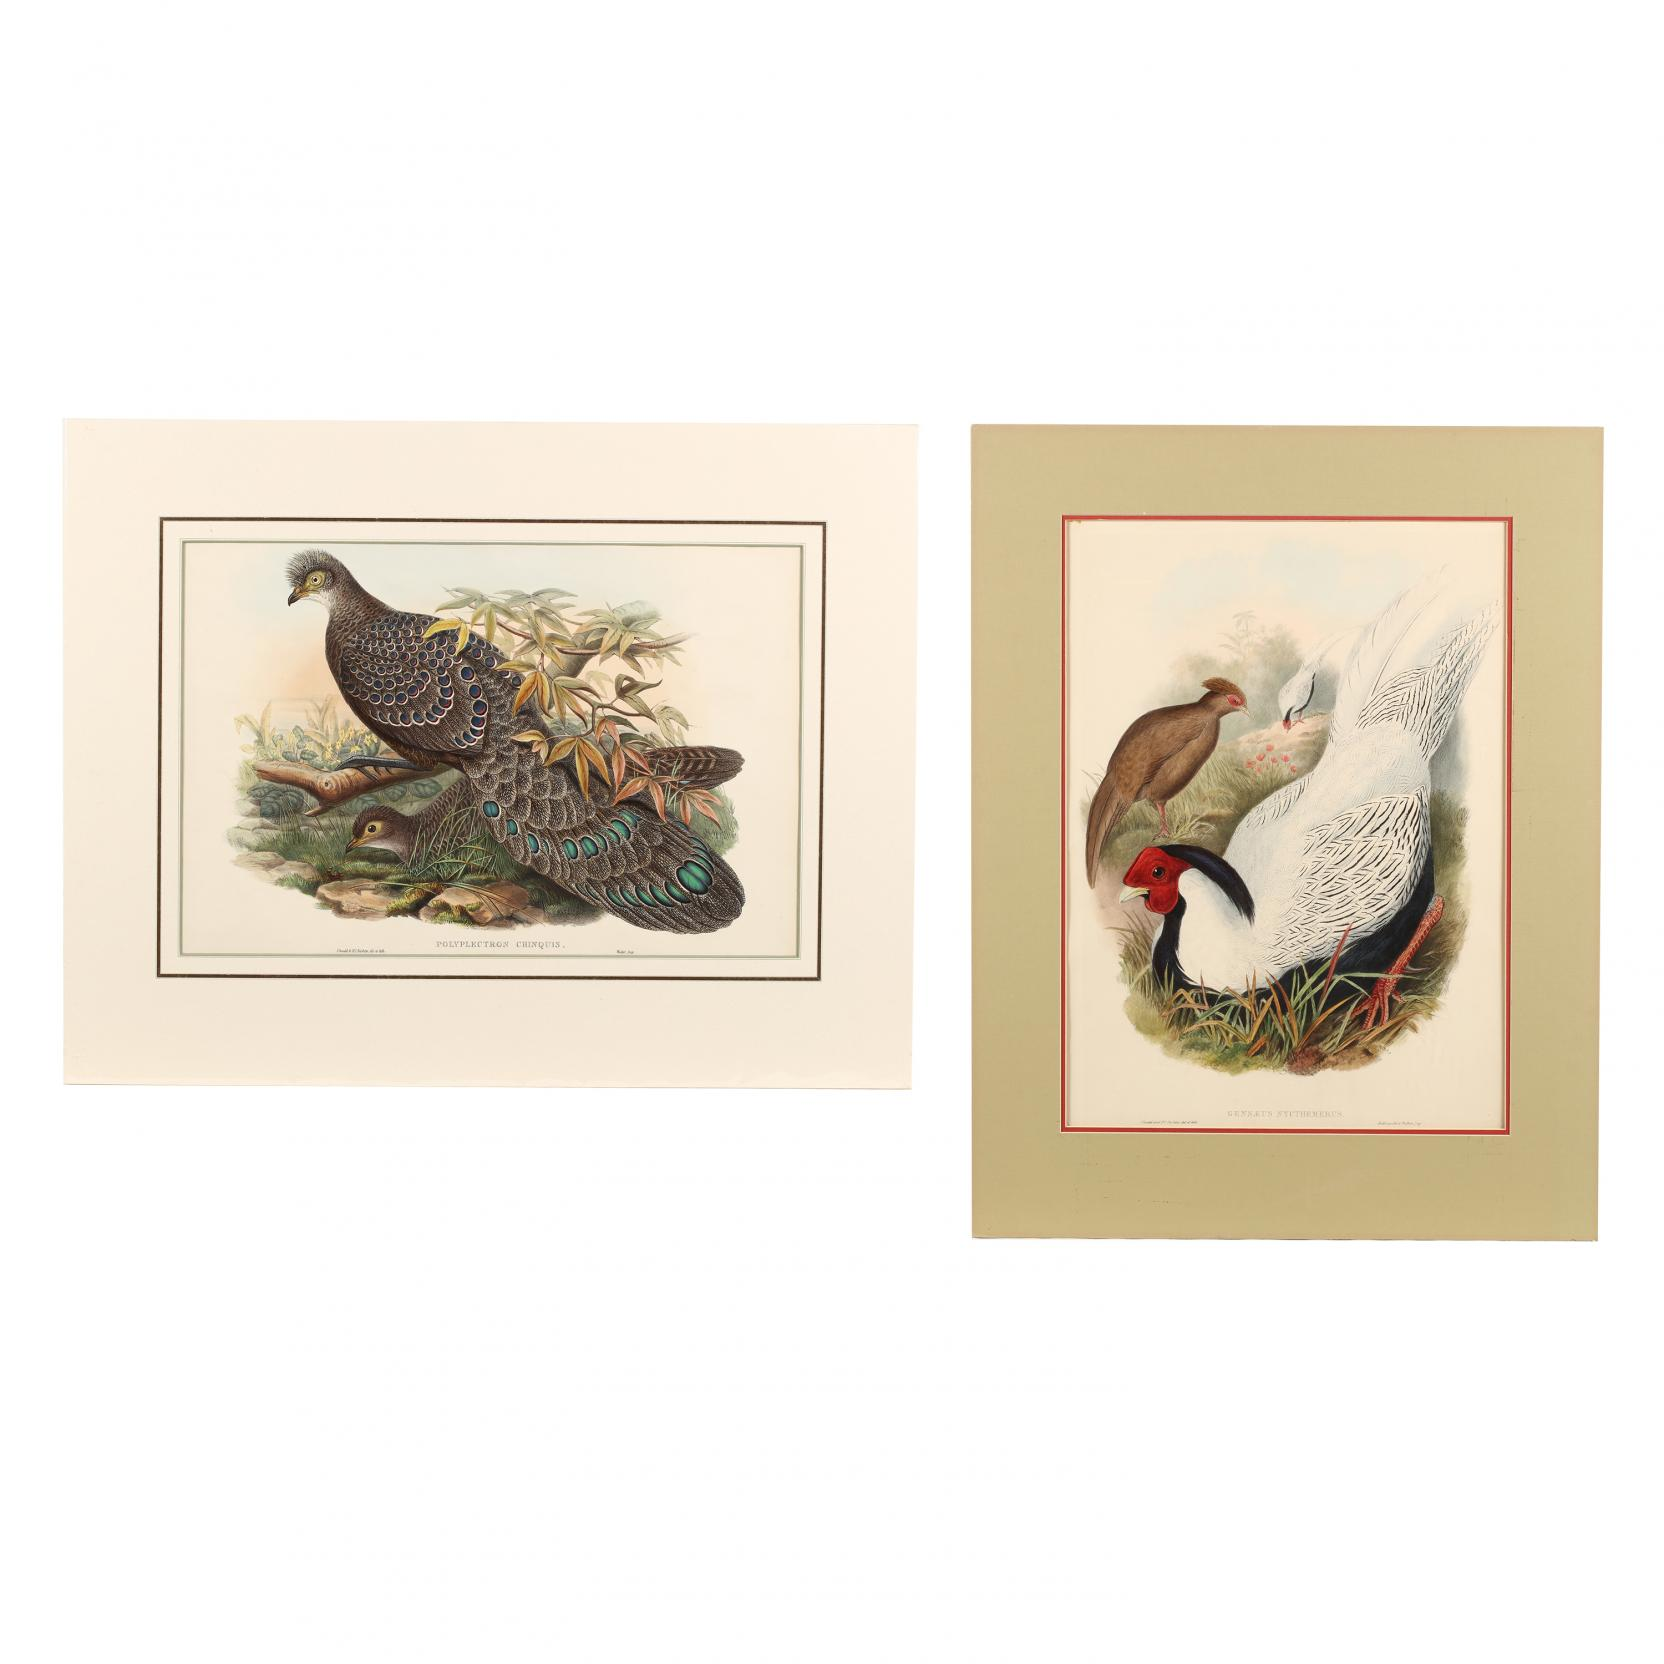 j-gould-h-c-richter-19th-century-two-pheasant-prints-from-john-gould-s-i-the-birds-of-asia-i